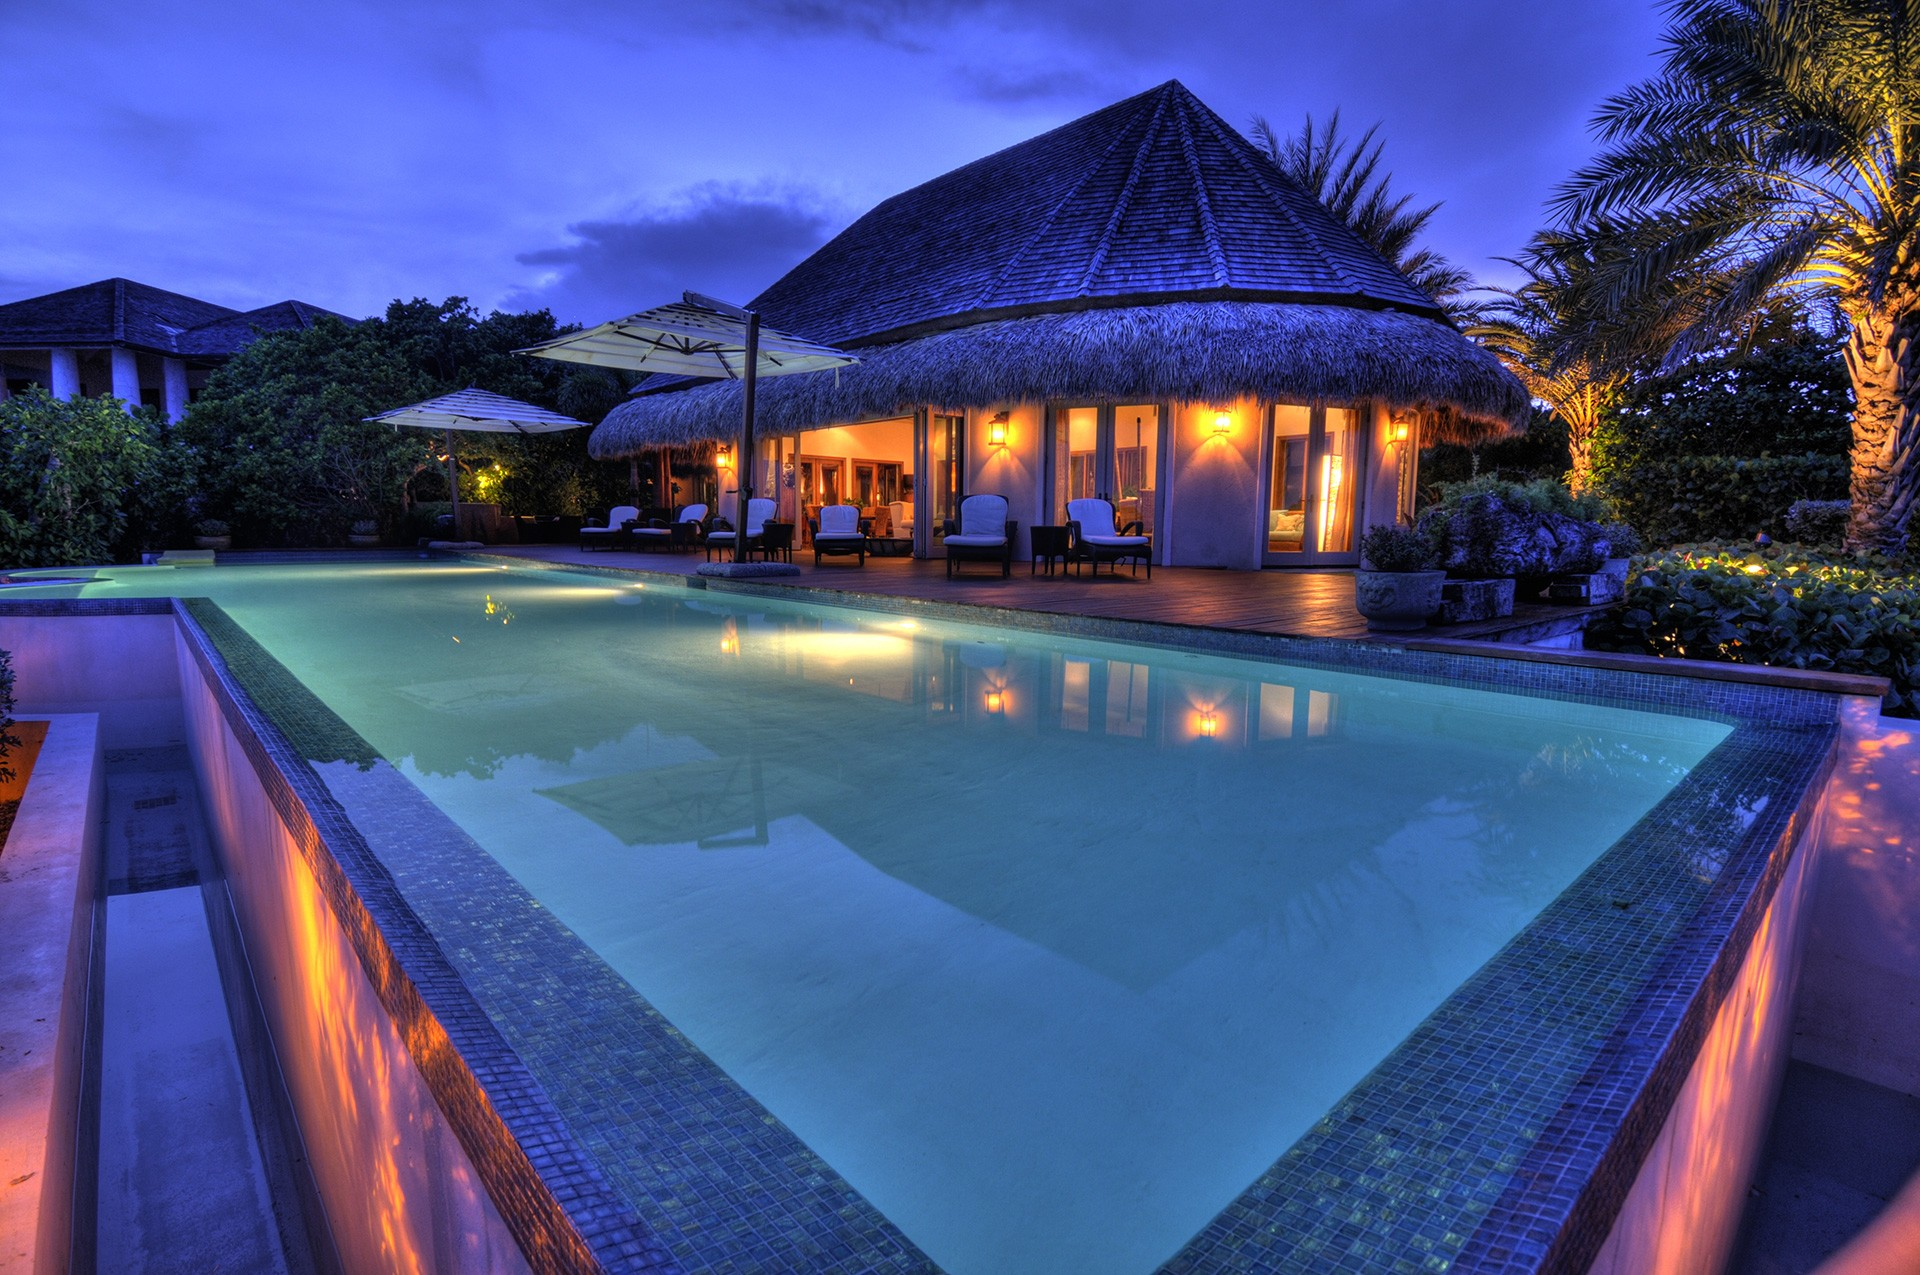 Home Rentals in Dominican Republic